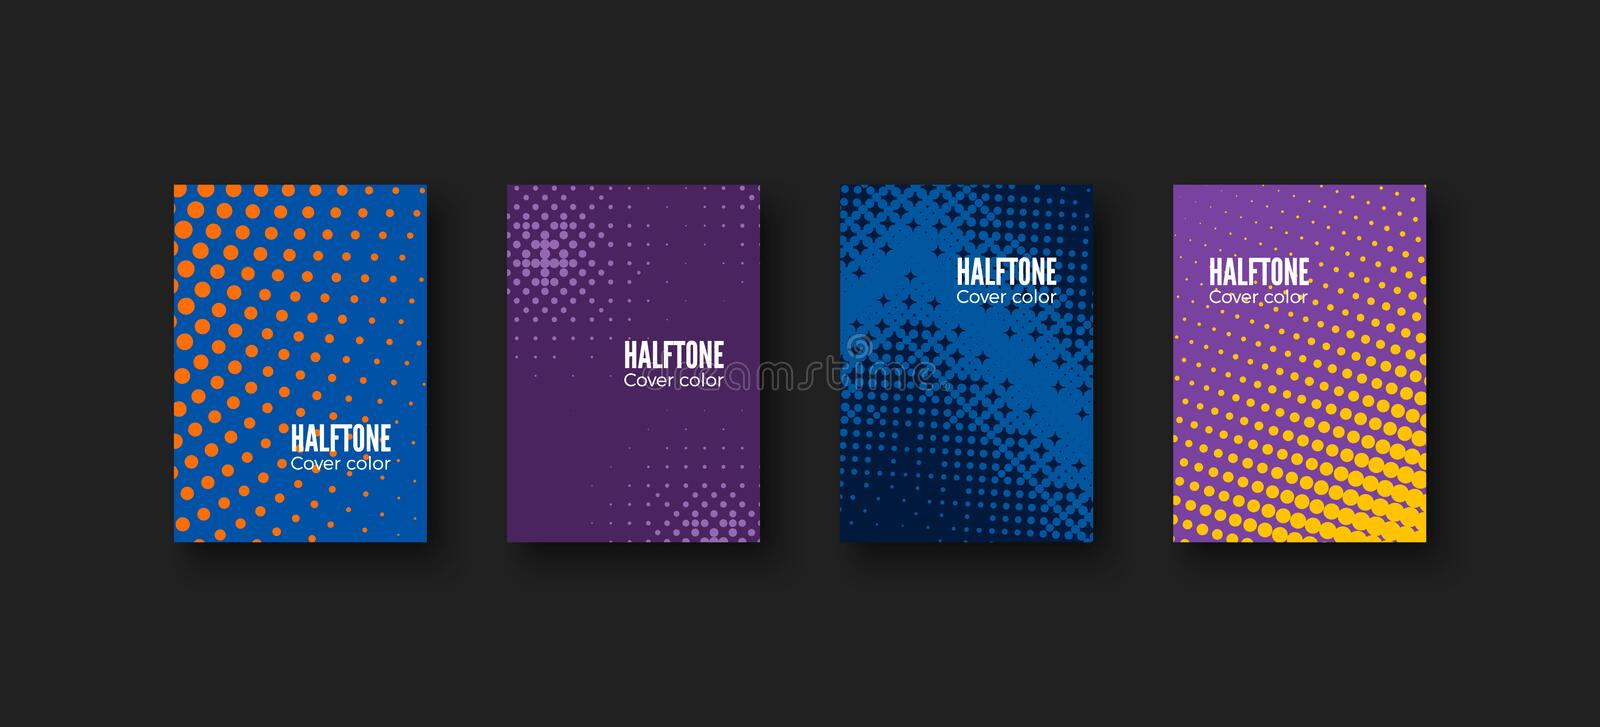 Minimal covers design. Geometric patterns set. Minimalistic identity template. Colorful halftone gradients. Vector illustration vector illustration